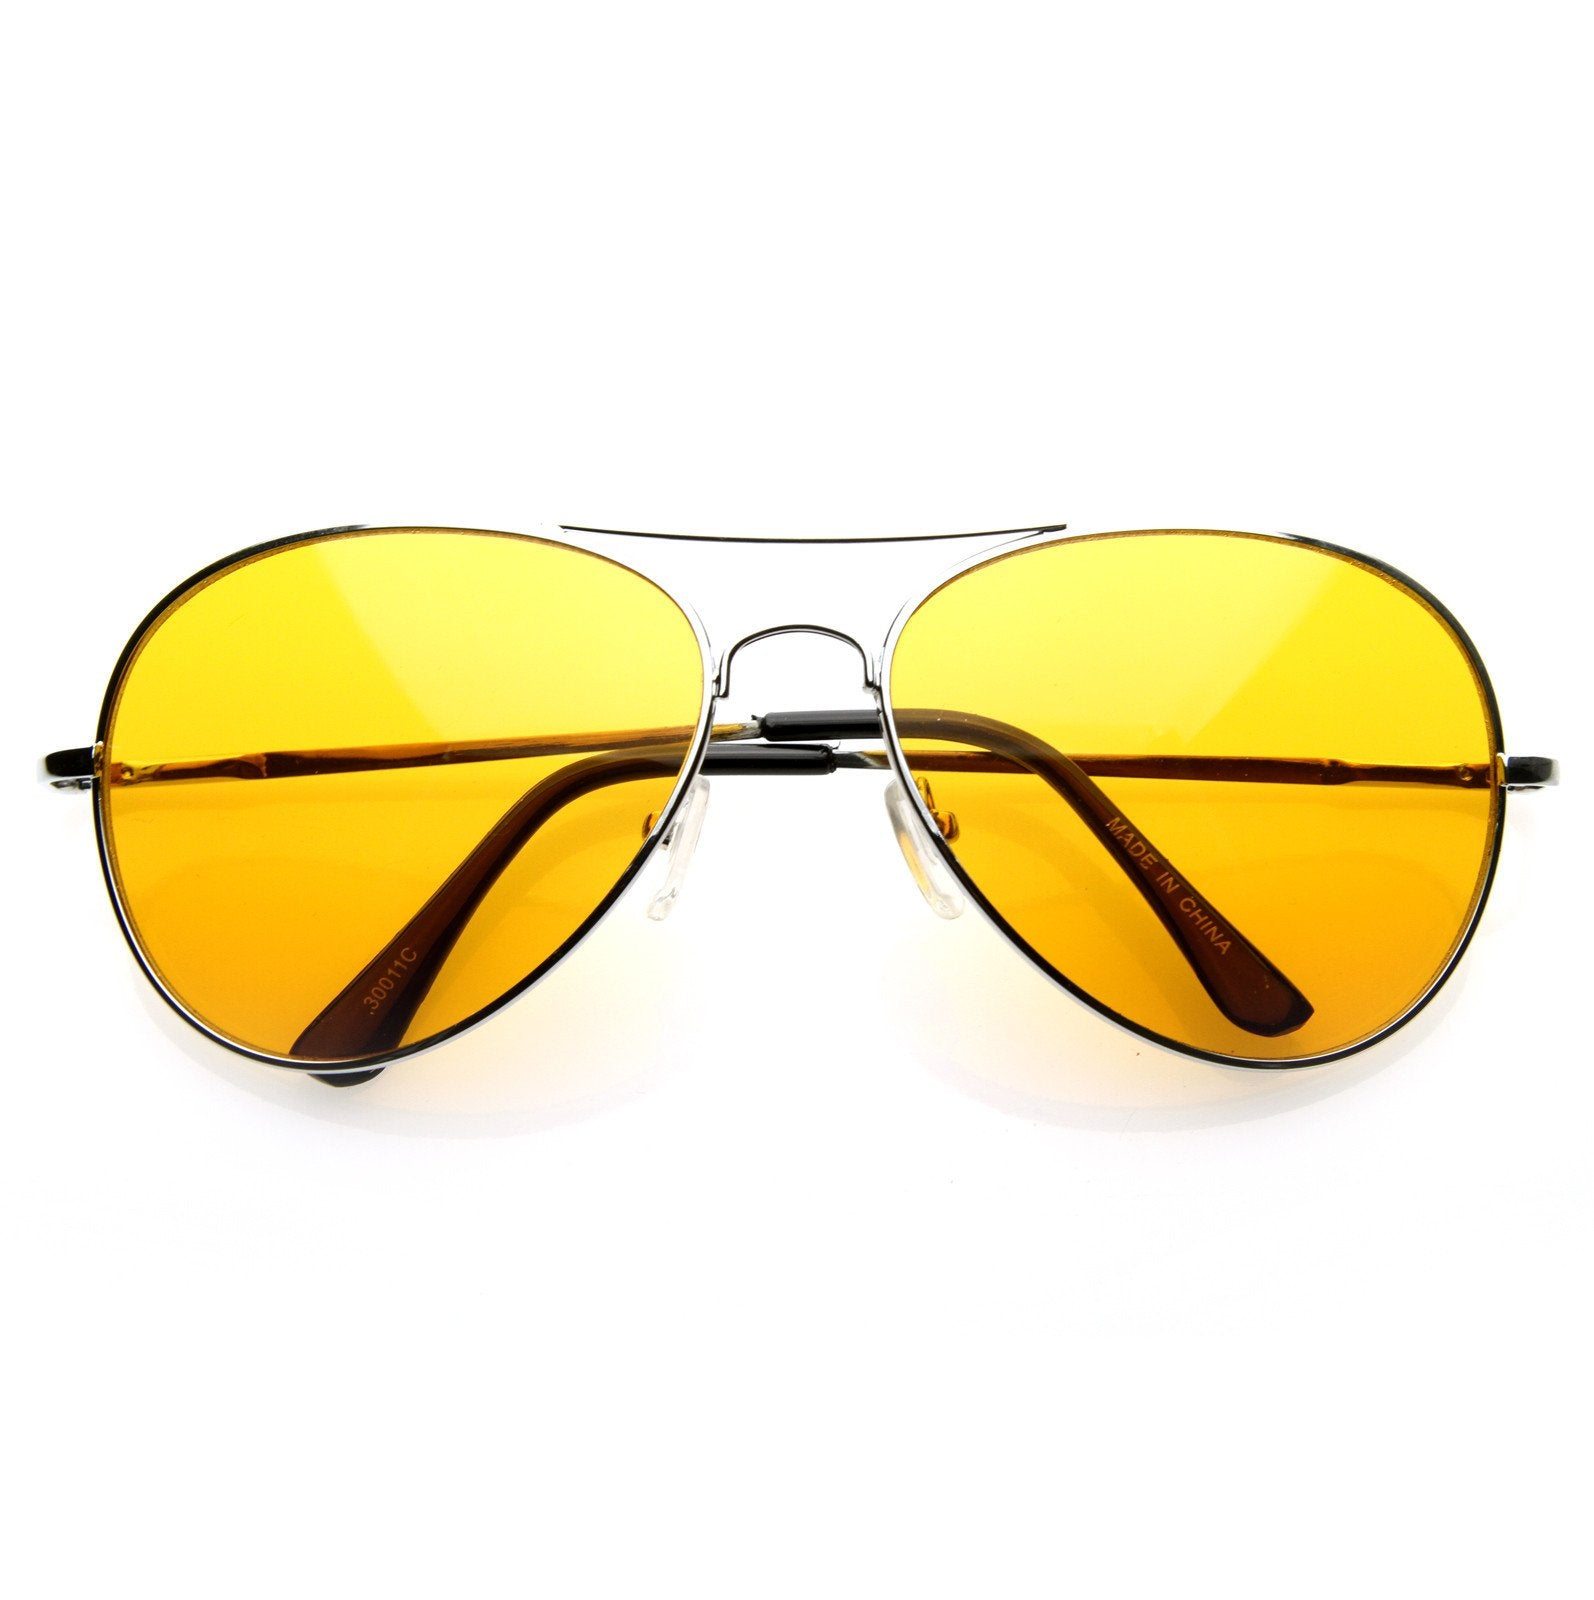 fb035d19d5 ... Retro Metal Color Tinted Lens Aviator Sunglasses 8405 59mm · Orange